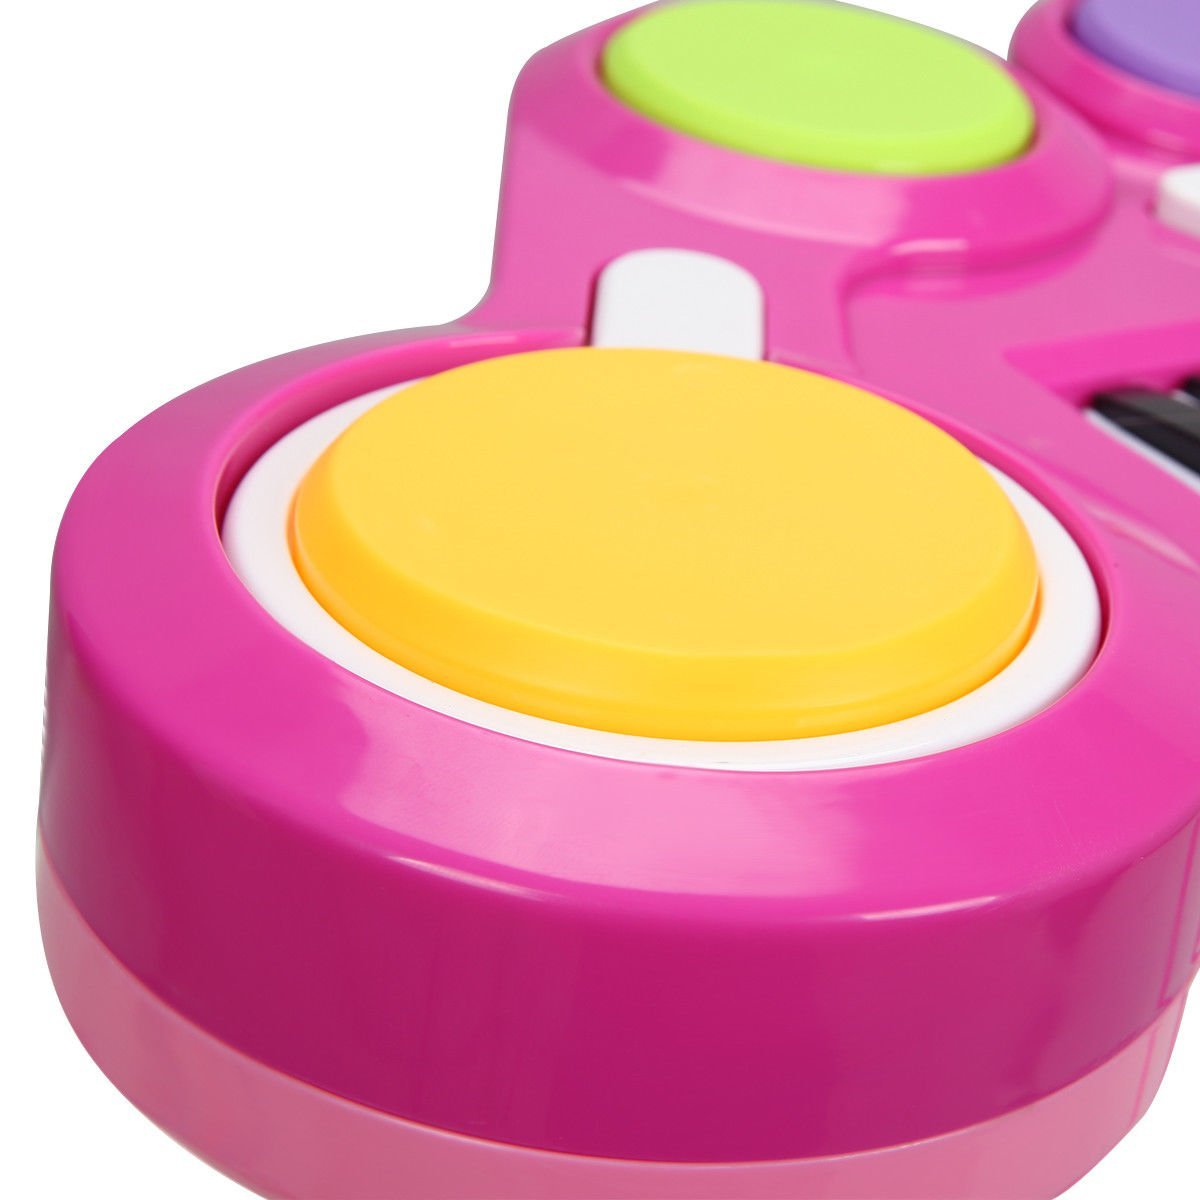 Costzon 2 In 1 Electronic Keyboard and Drum Musical 37-Key Toy Electronic Organ Piano and Drum with Microphone and Flashing Legs (Pink)8